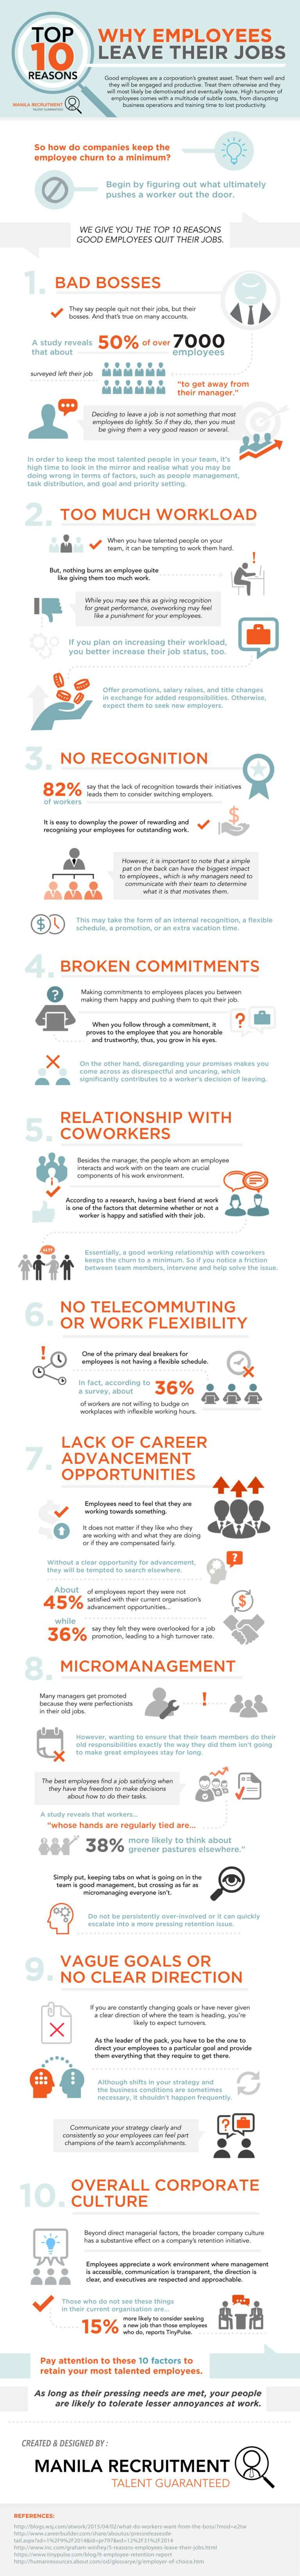 Infographic on top 10 reasons employees leave their job